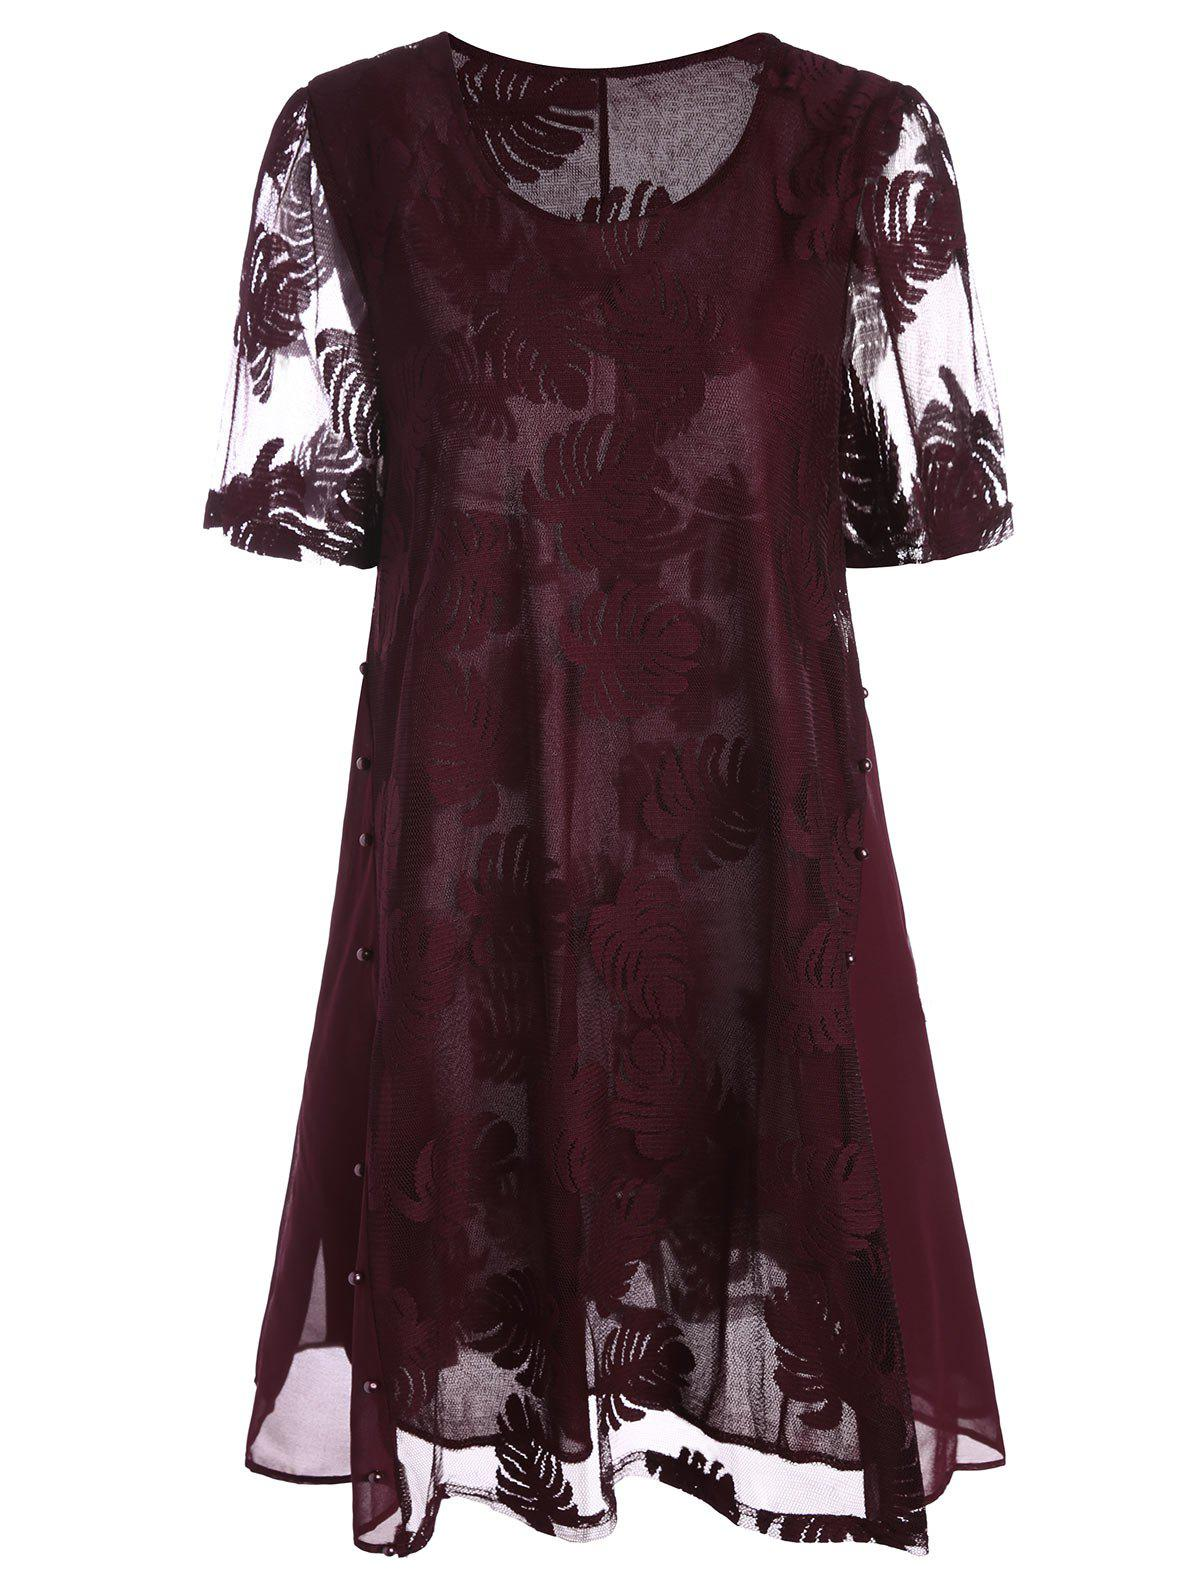 Mesh Trim Beaded  Long Plus SizeTopWOMEN<br><br>Size: 5XL; Color: WINE RED; Material: Polyester; Shirt Length: Long; Sleeve Length: Short; Collar: Round Neck; Style: Fashion; Season: Summer; Pattern Type: Solid; Weight: 0.2600kg; Package Contents: 1 x Top;